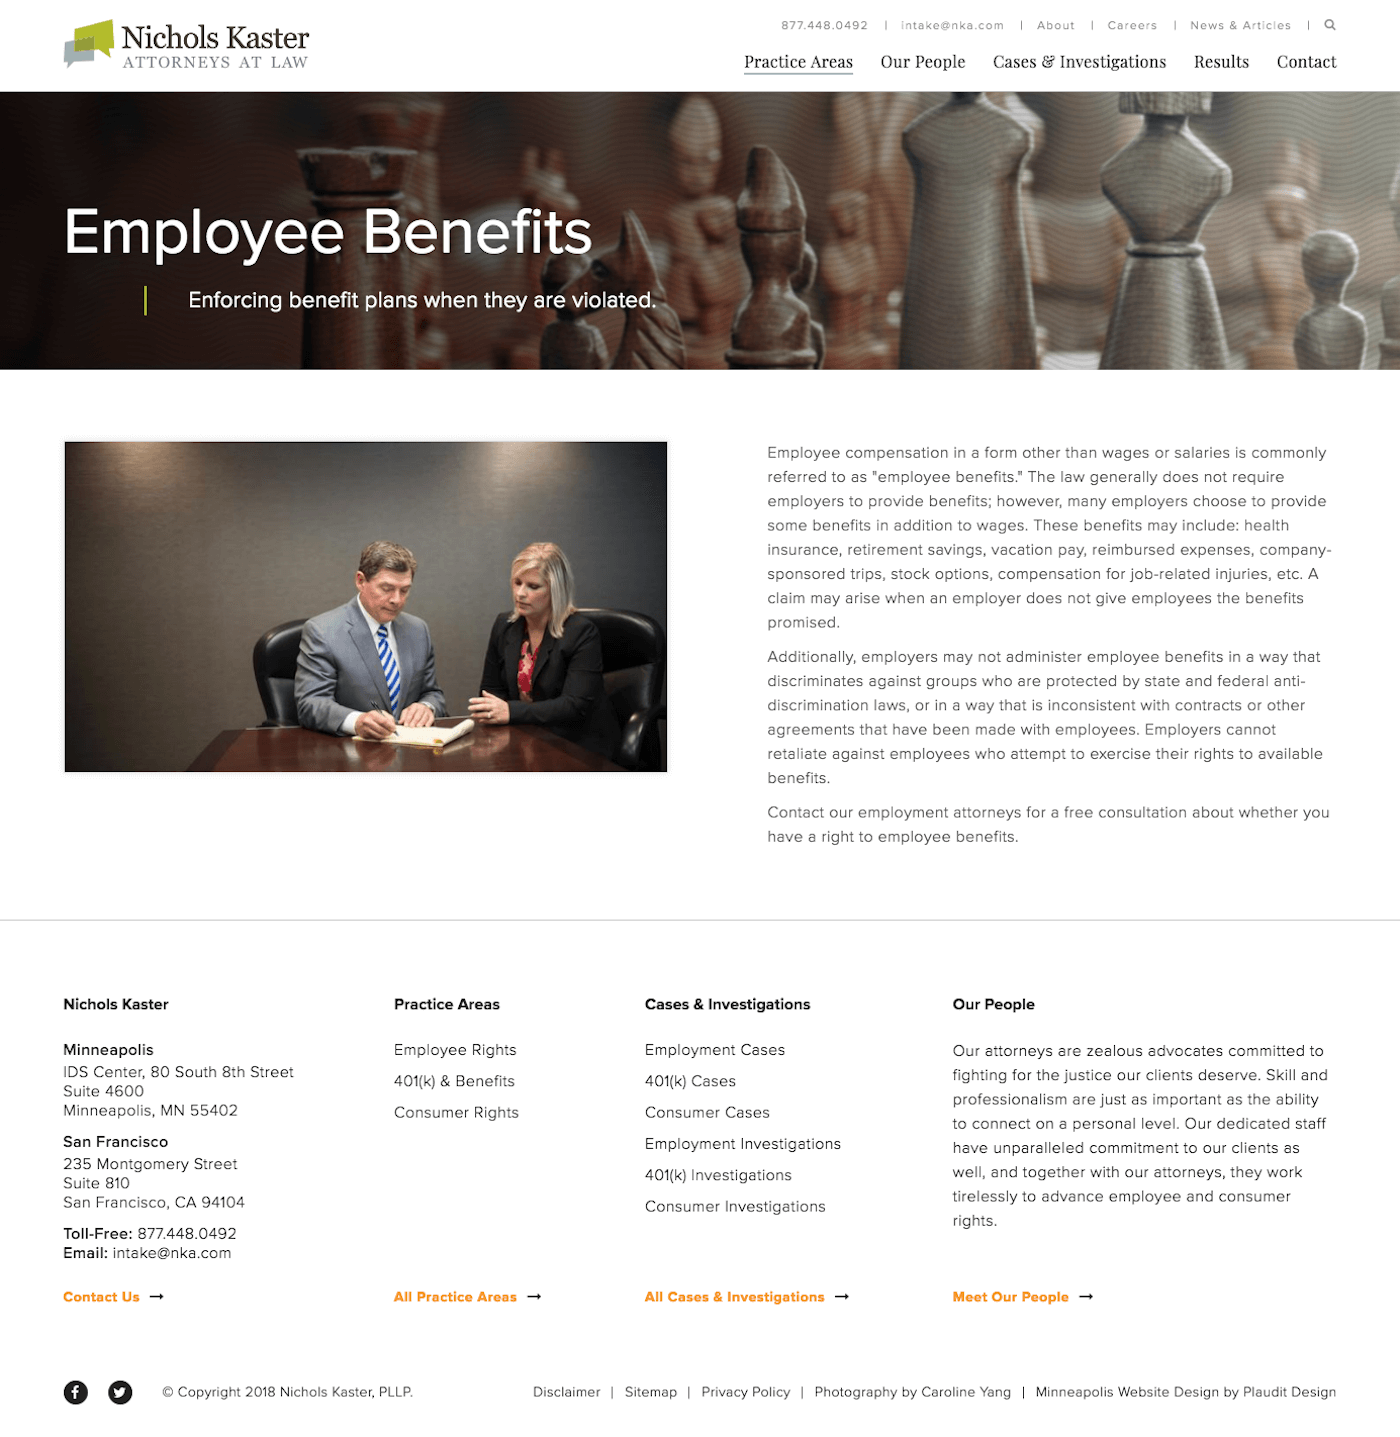 Nichols Kaster Web Design: Employee Benefits Practice Area